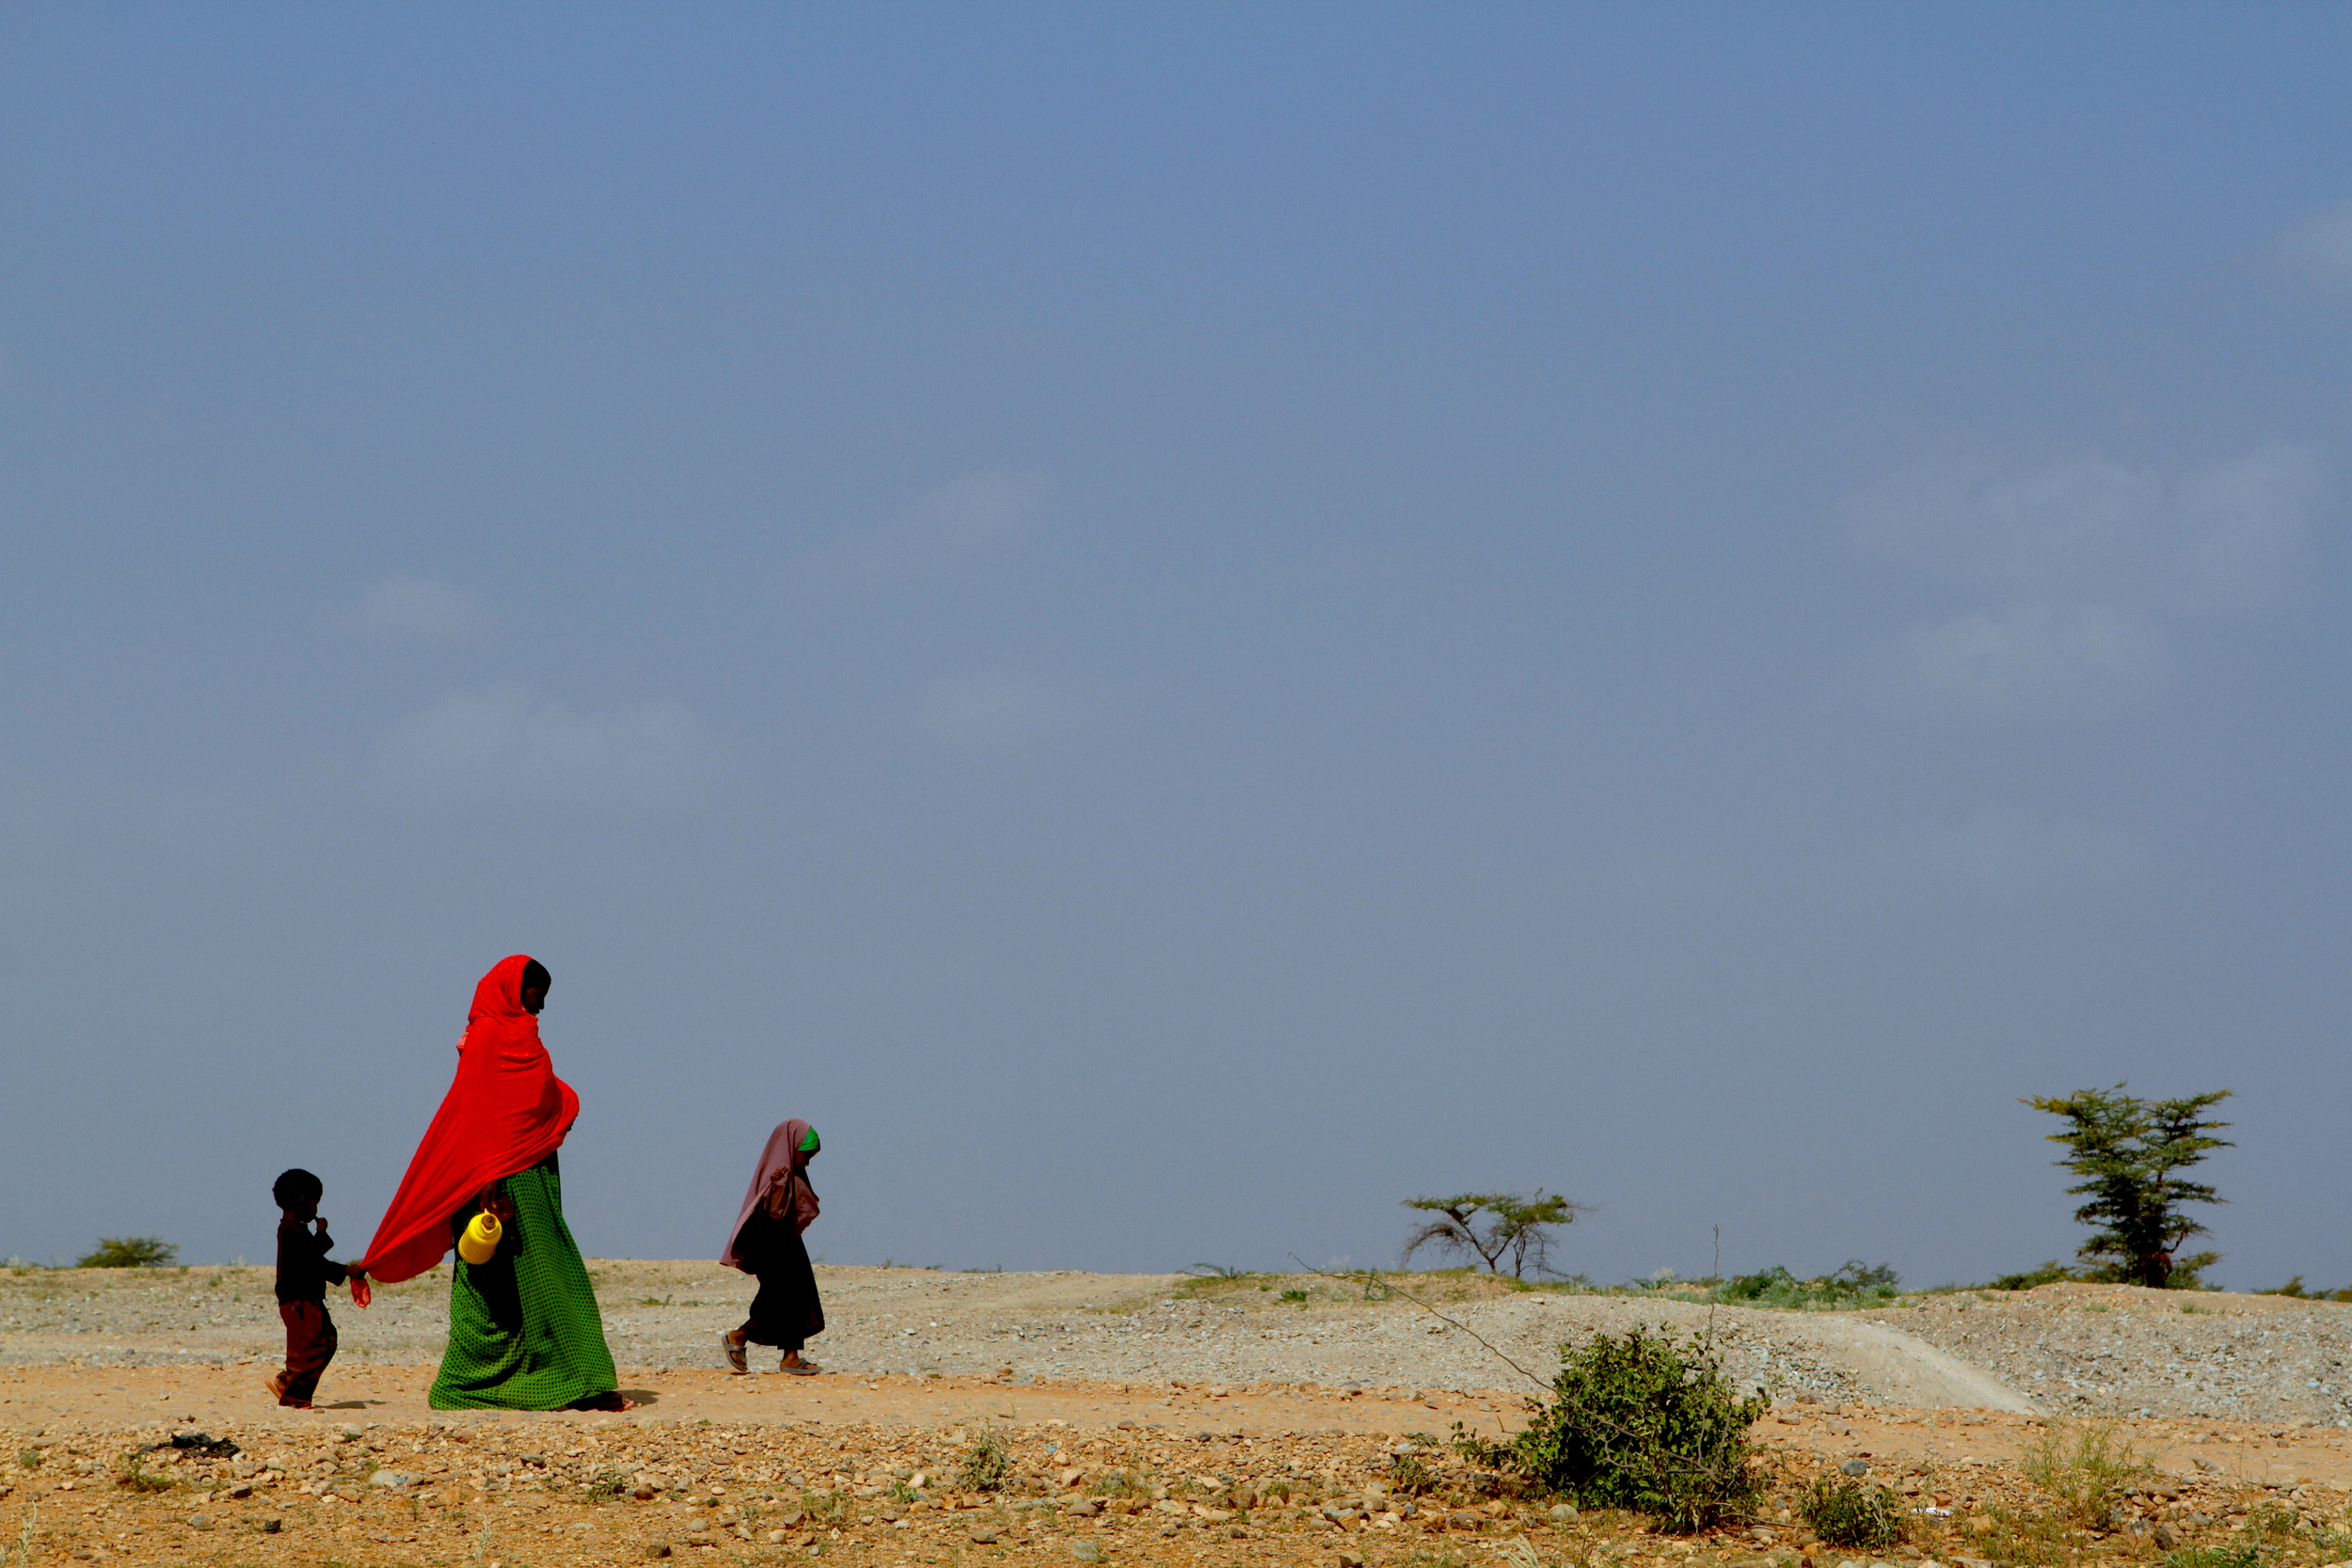 Somali refugees walking to fetch water in the Dolo Ado refugee camp in Ethiopia